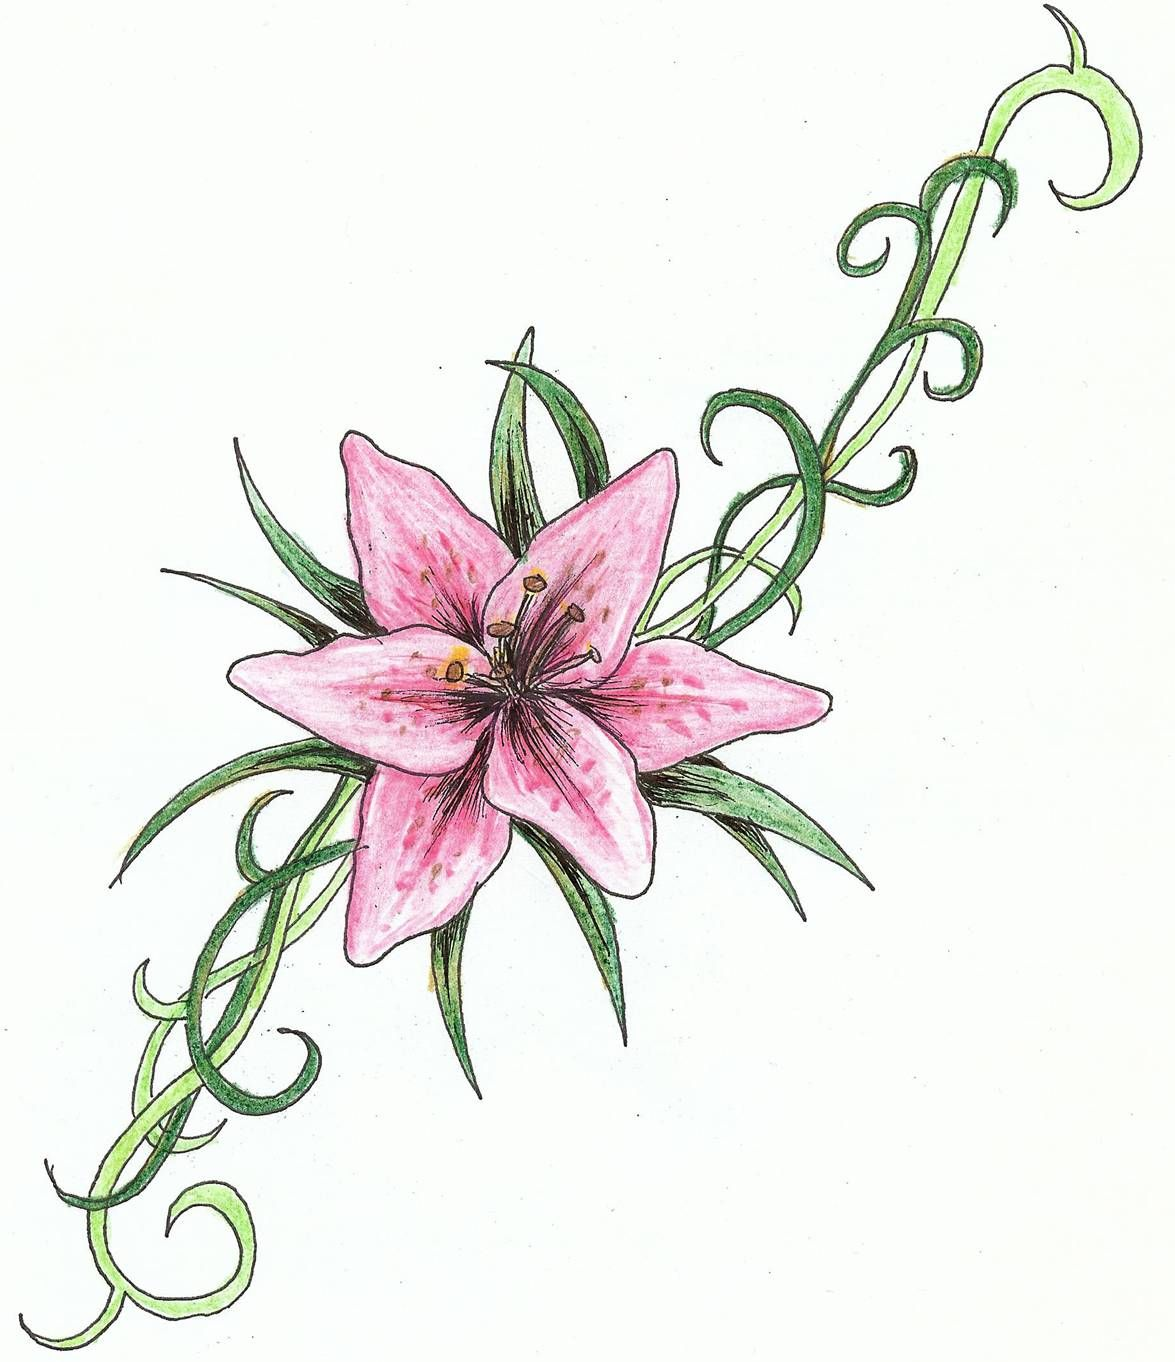 Stargazer lily tattoo designs bing images tattoos pinterest lily tattoo lily tattoo meaning meaning tattoos stargazer lily tattoos lily flower tattoos izmirmasajfo